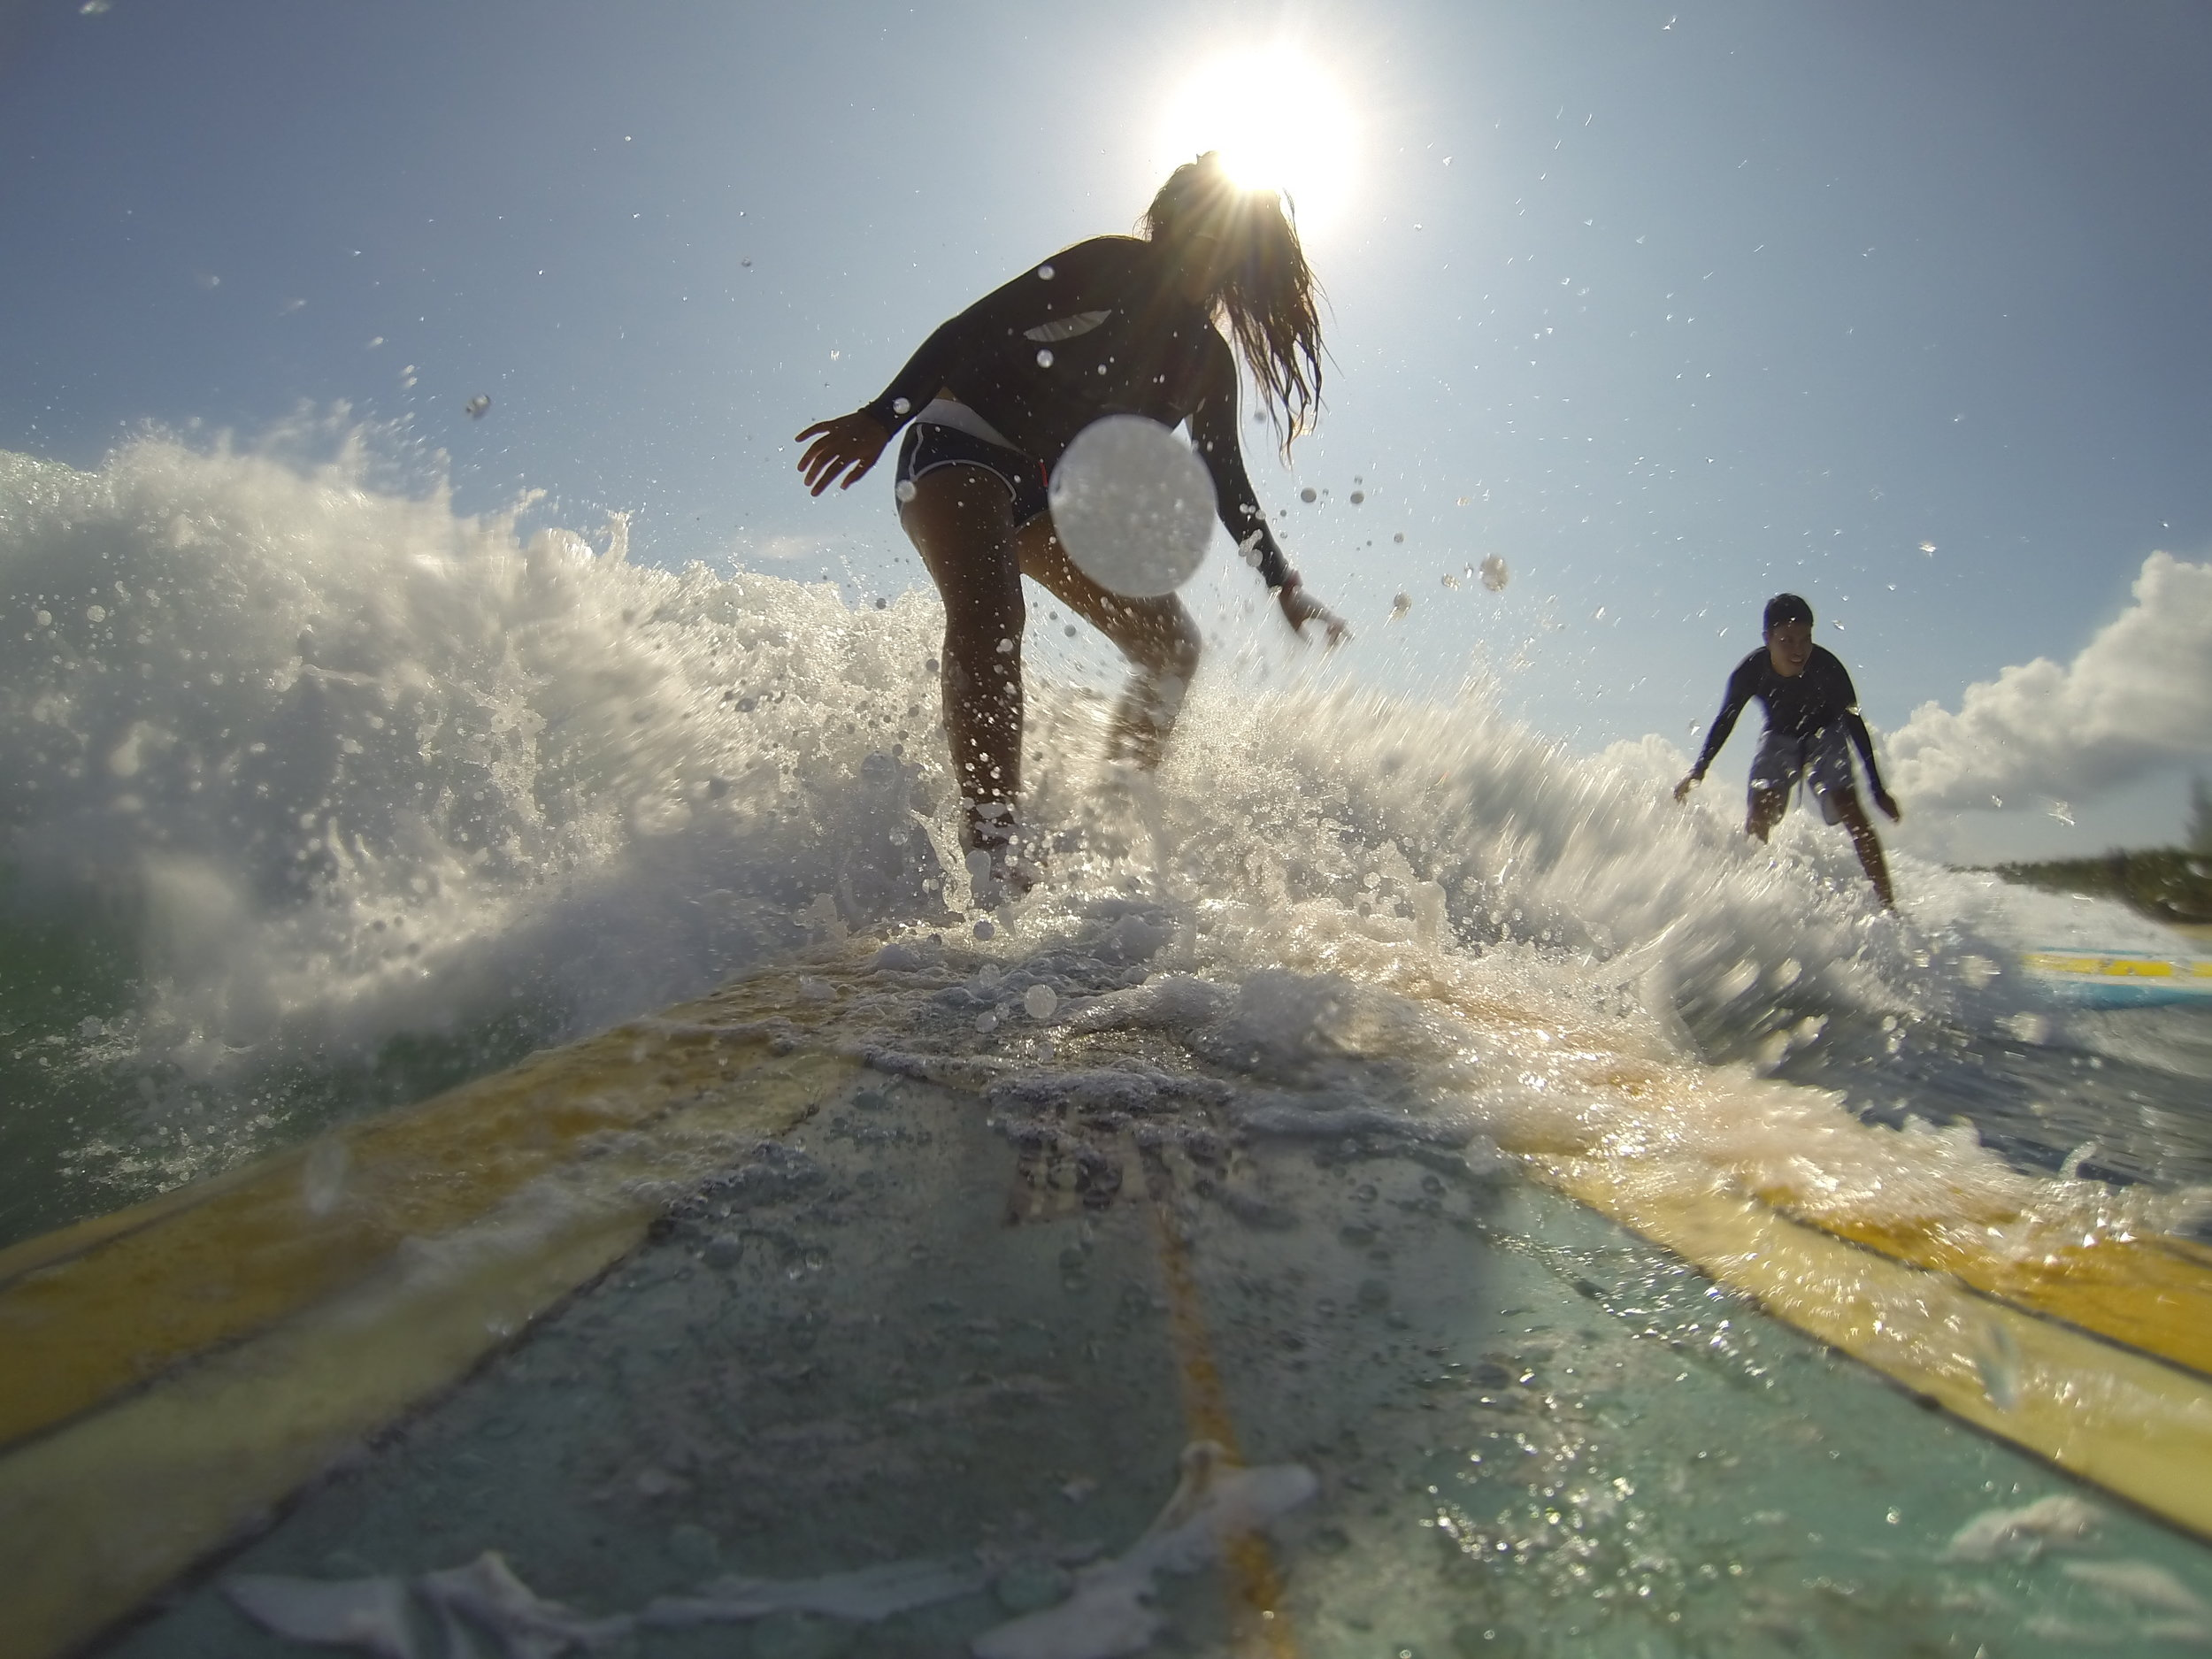 One of those rare occasions when I'd take out my GoPro to surf. It was almost all wipeouts and this was the only decent shot. Hello to Miko on the side!